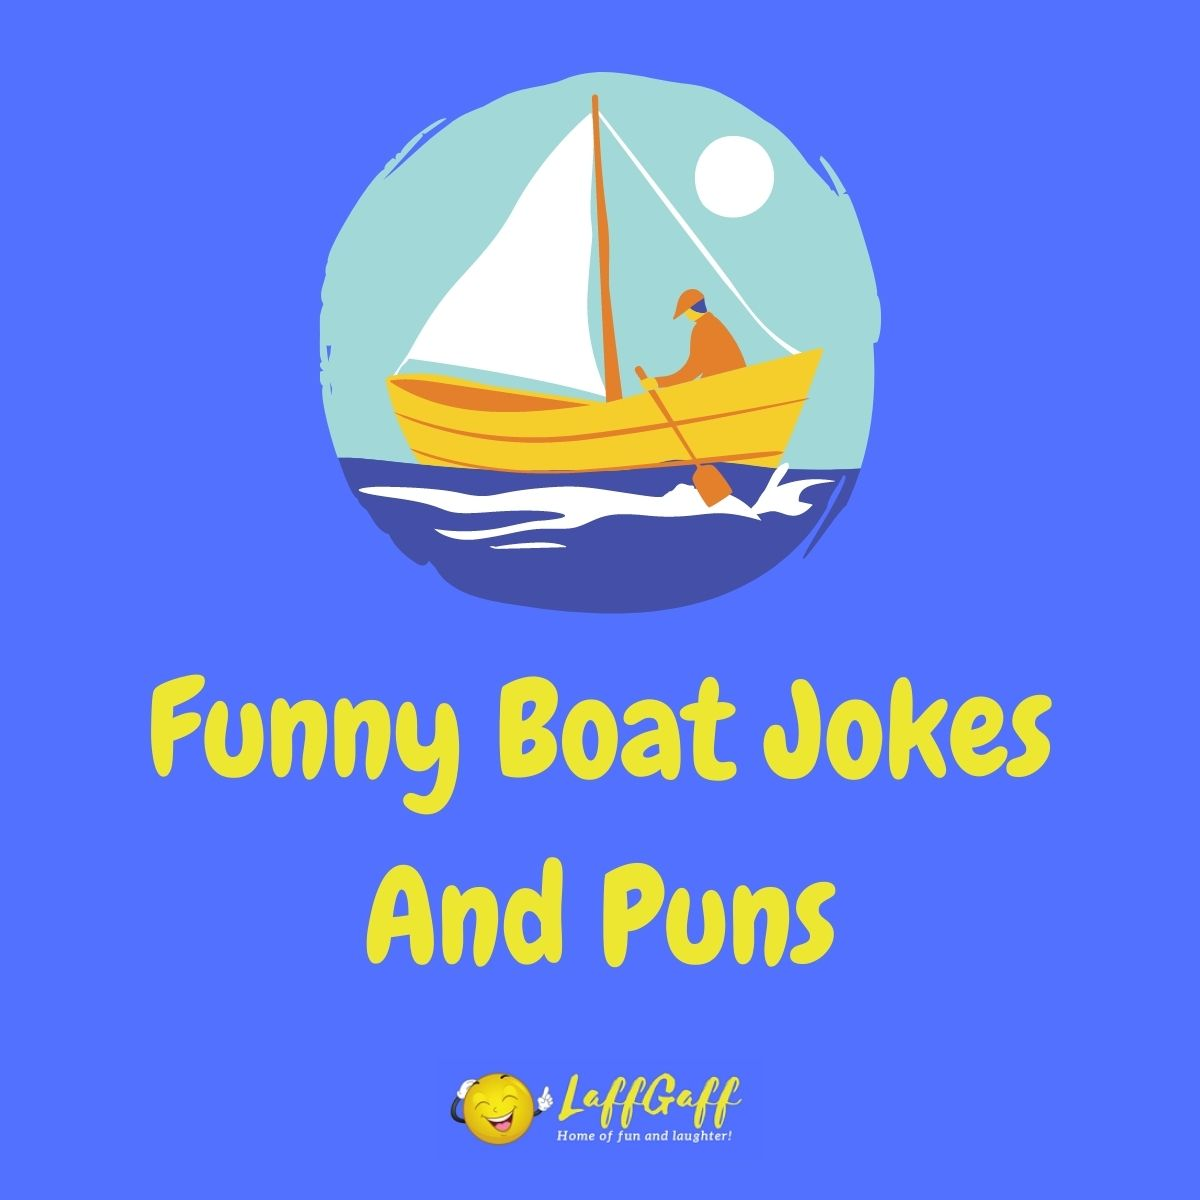 Featured image for a page of funny boat jokes and puns.